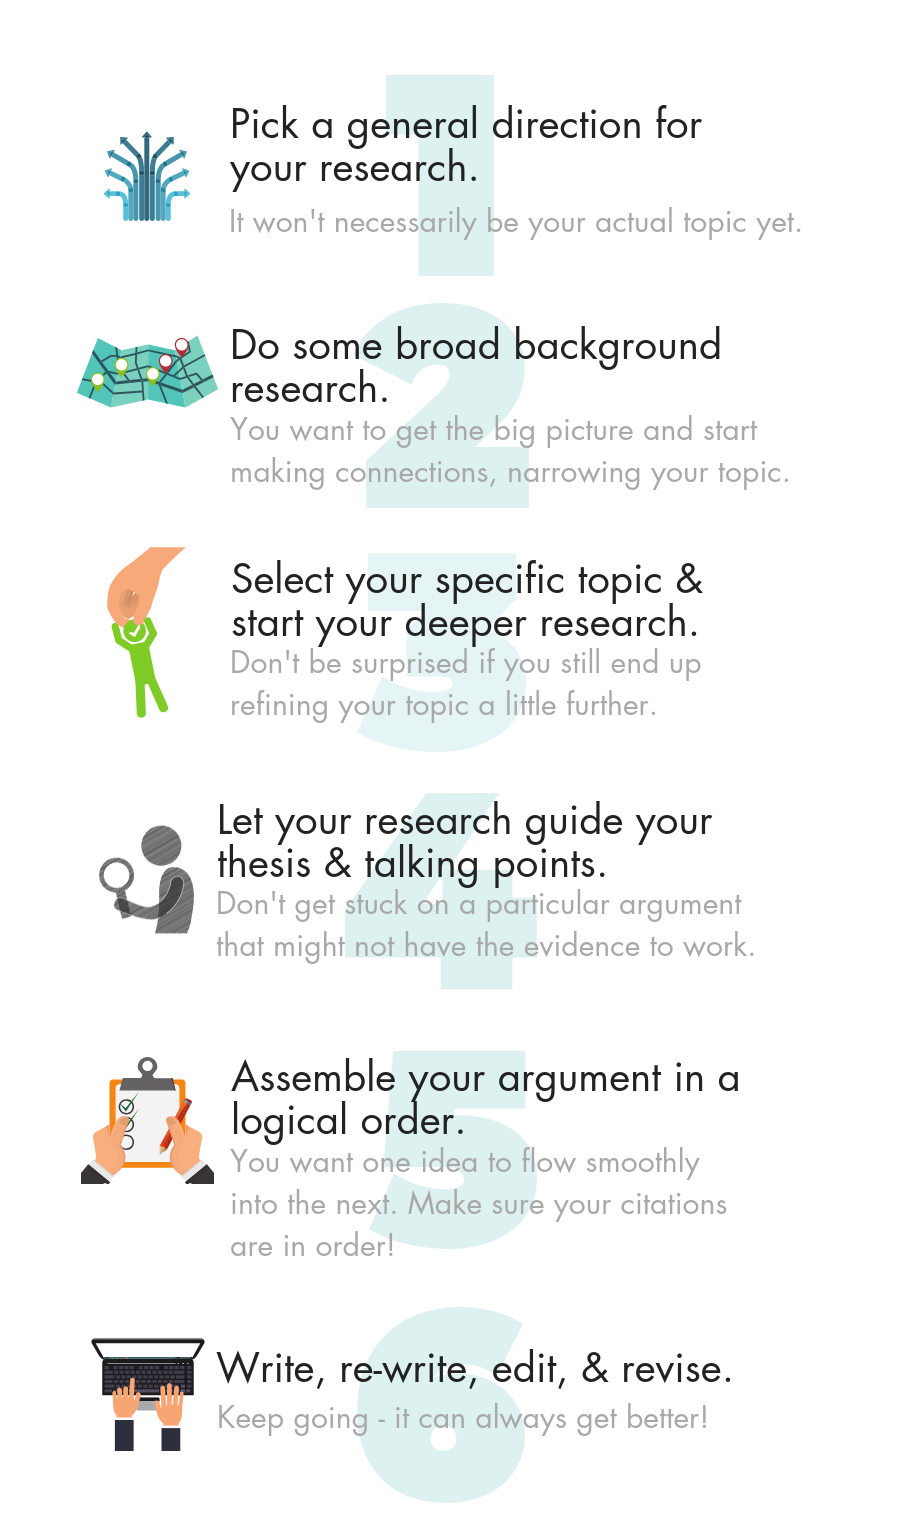 Research process steps, from narrowing your topic, developing your argument, and producing your drafts